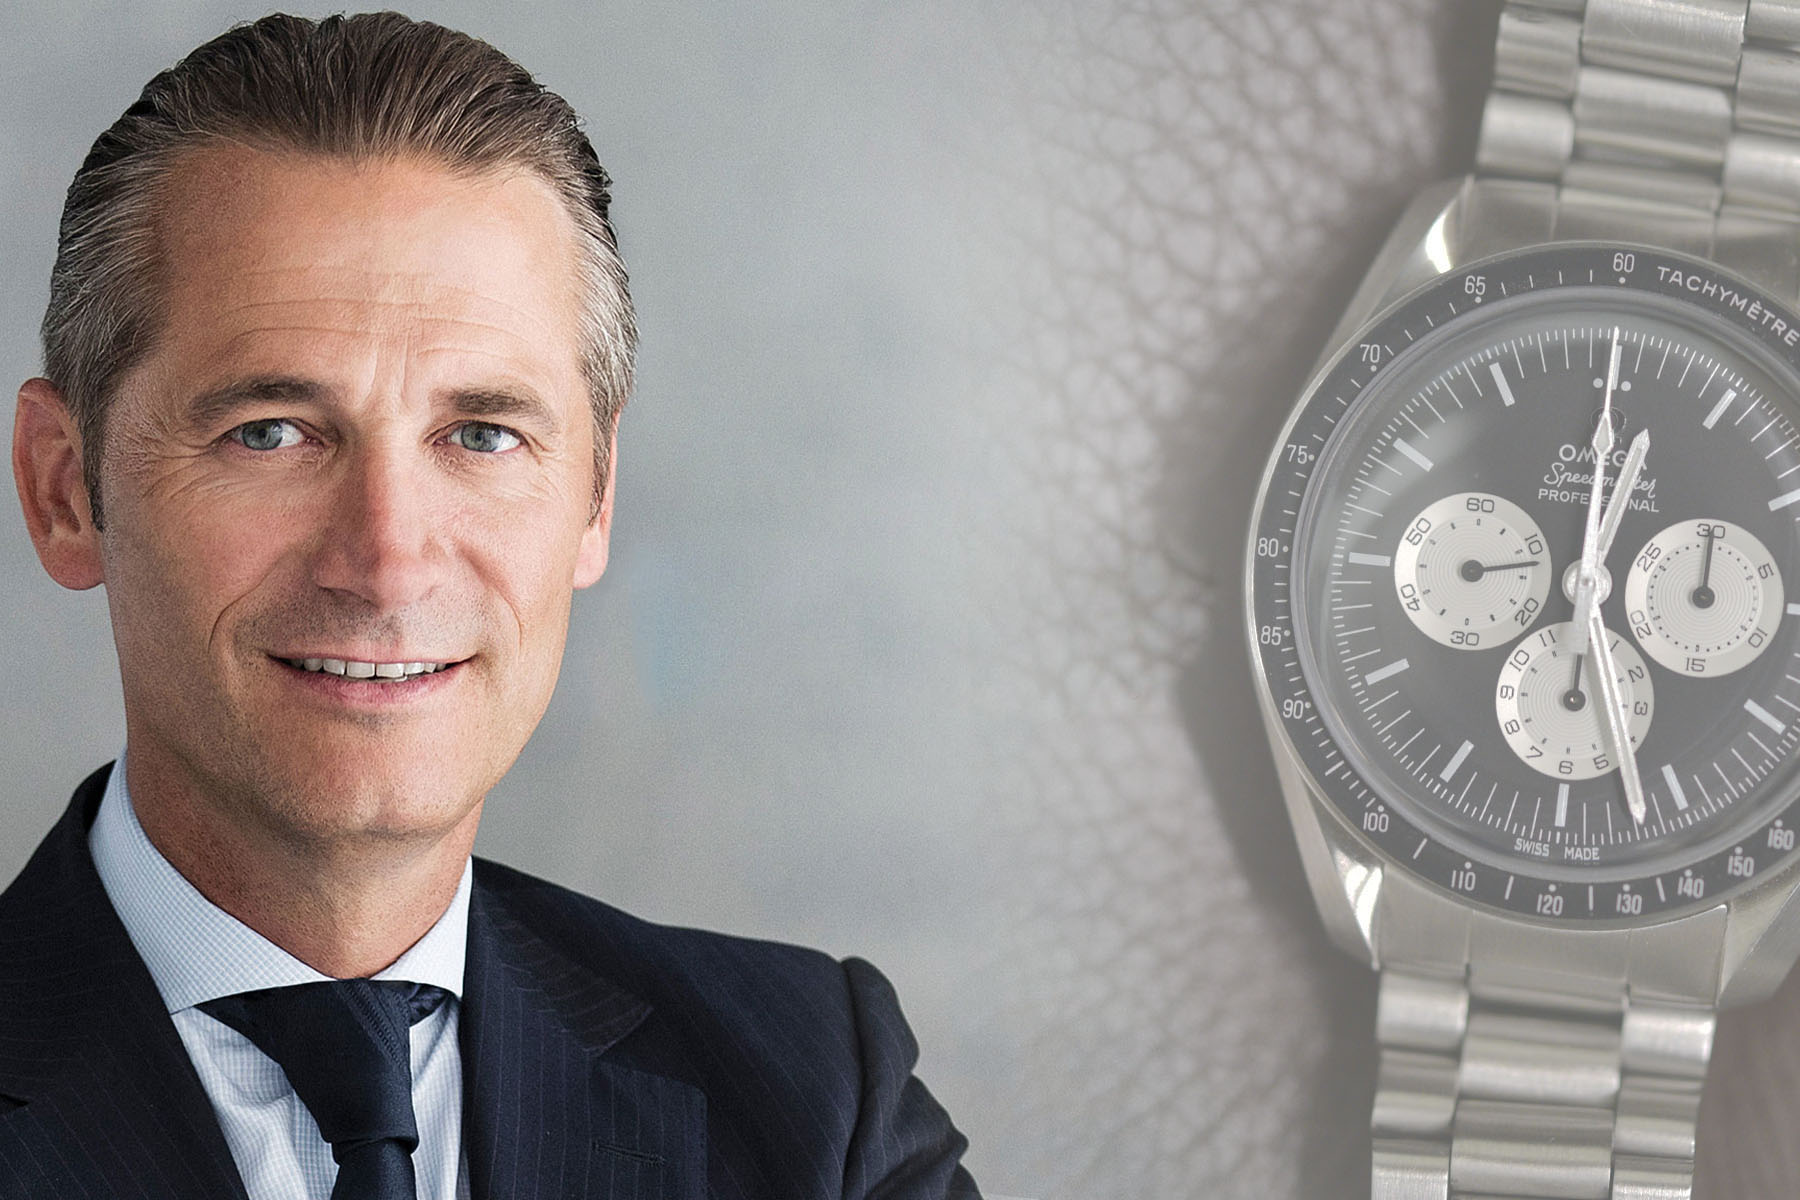 Moon Landing 50 - How the Omega Speedmaster Profesionnal Moonwatch became an icon Raynald Aeschlimann